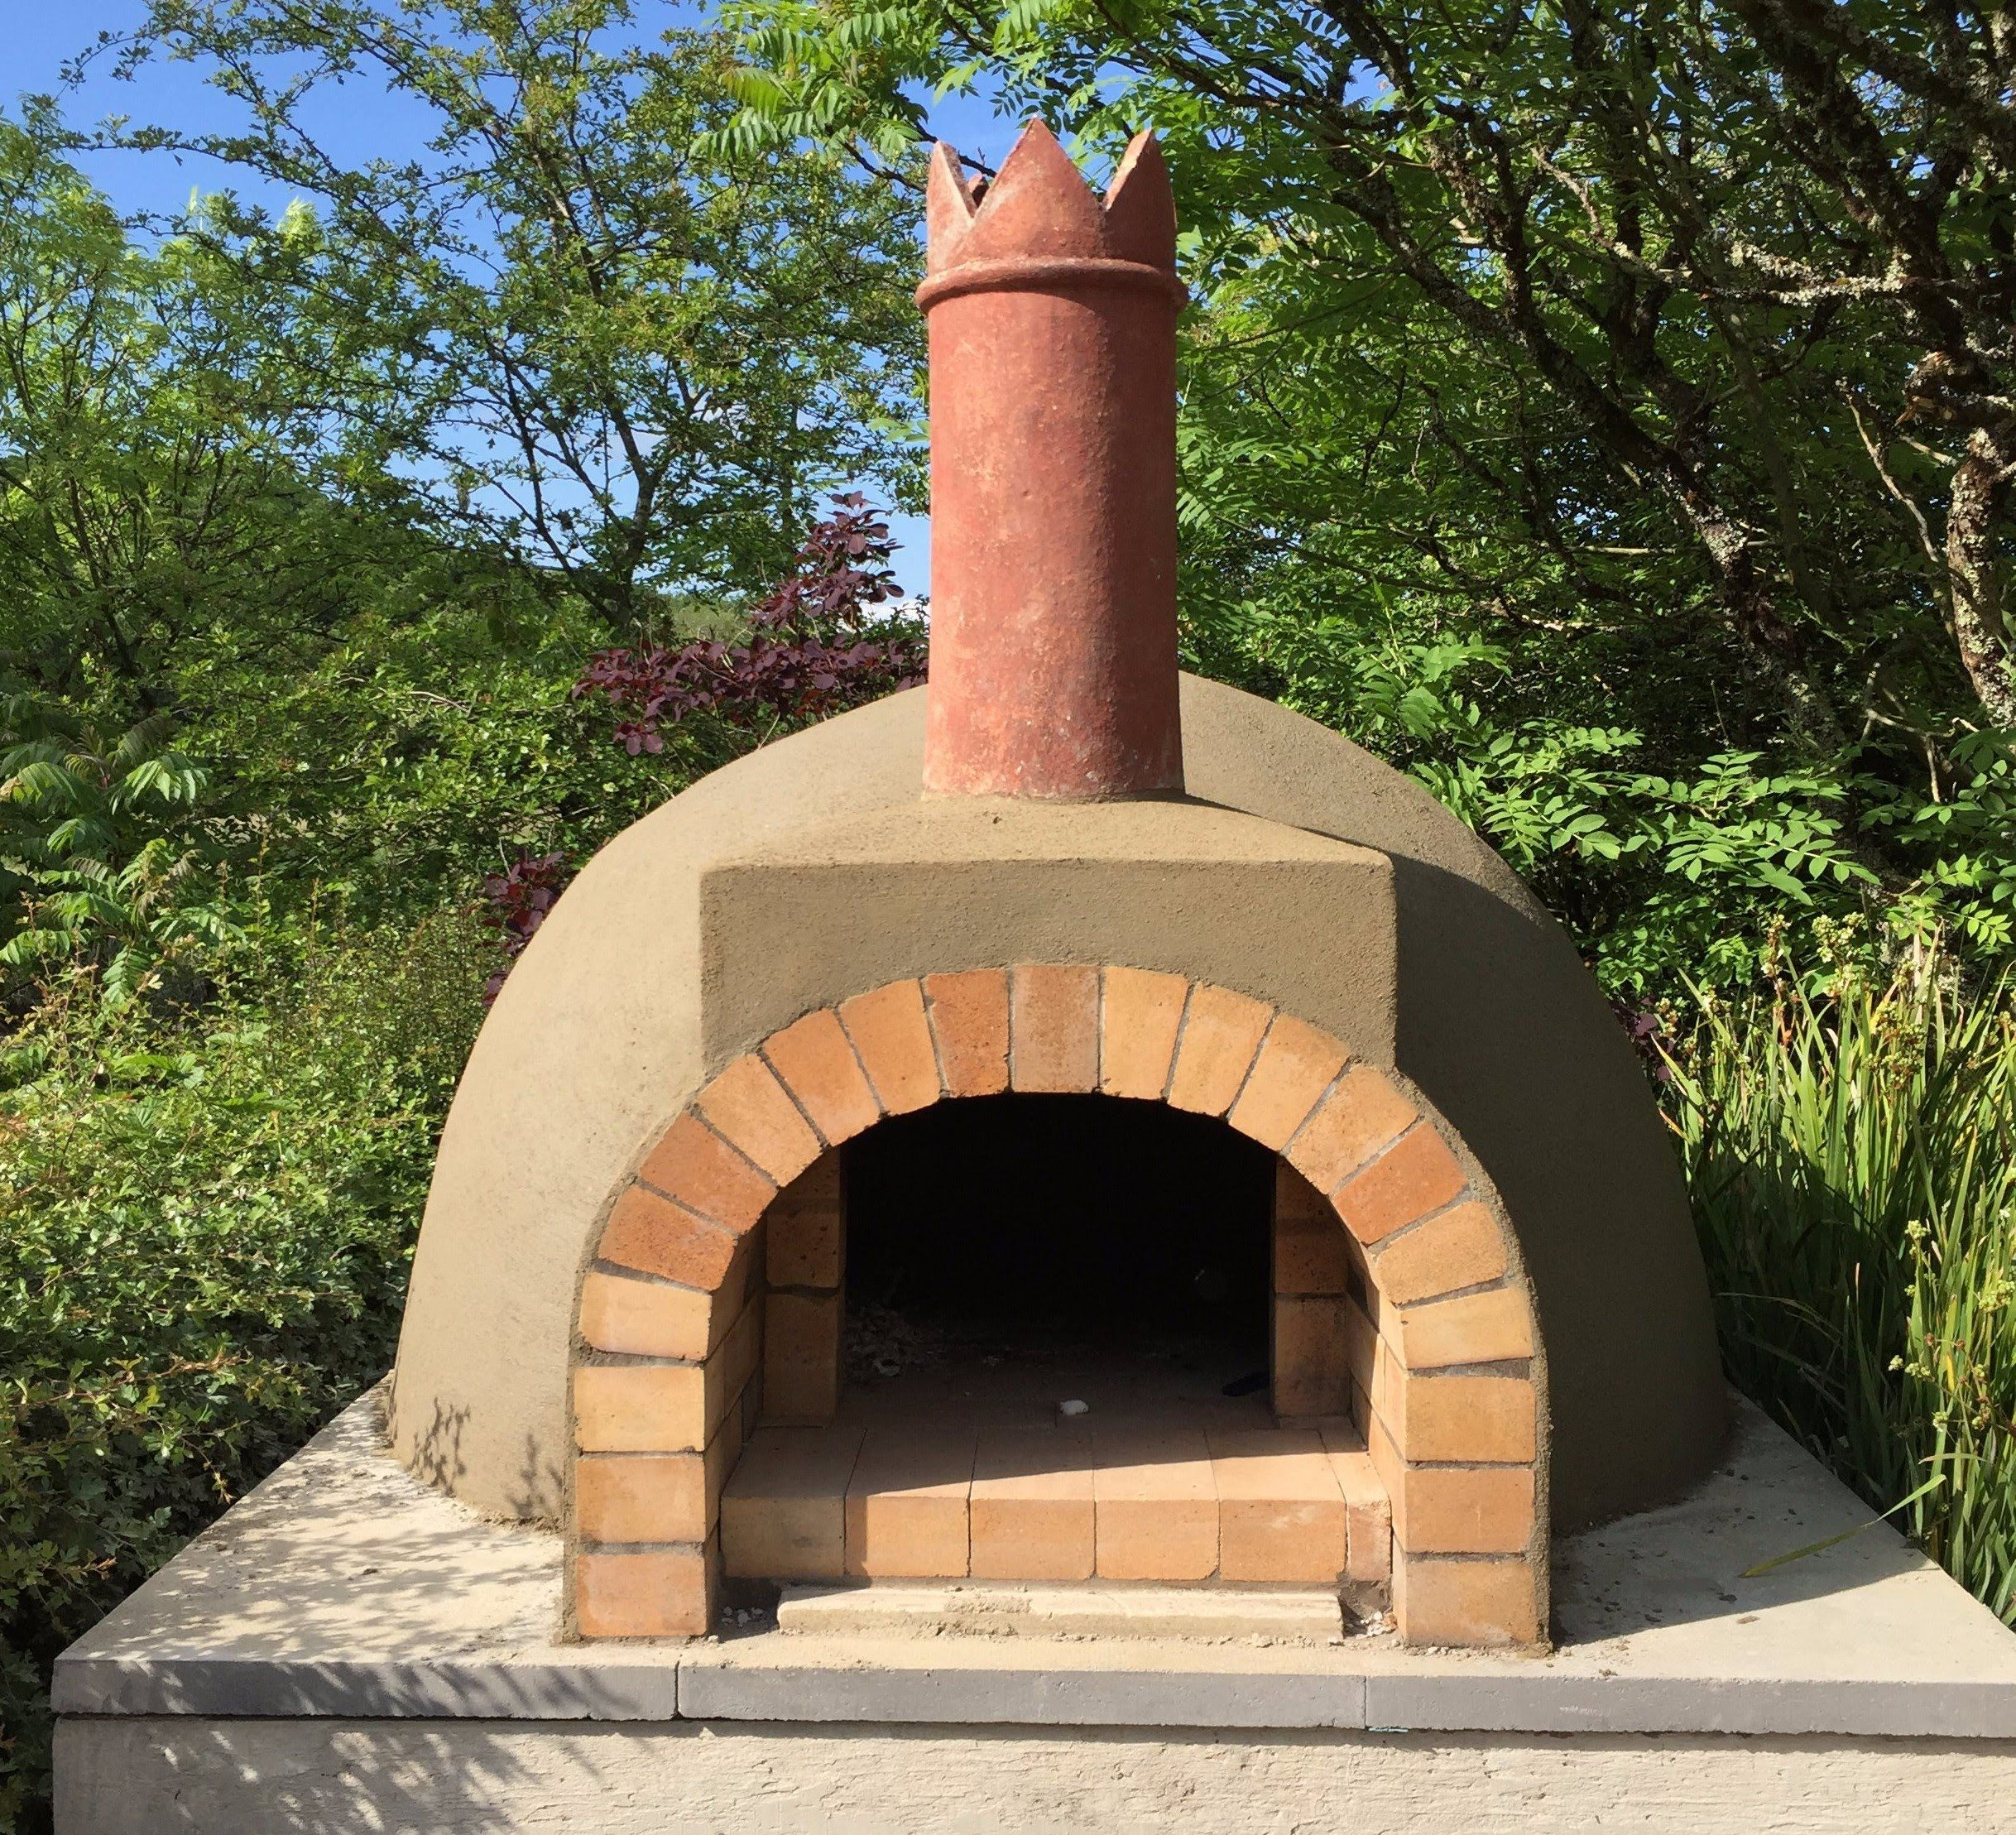 Chimeneas Exteriores Pizza Oven Construction Diy Horno Parrilla Horno